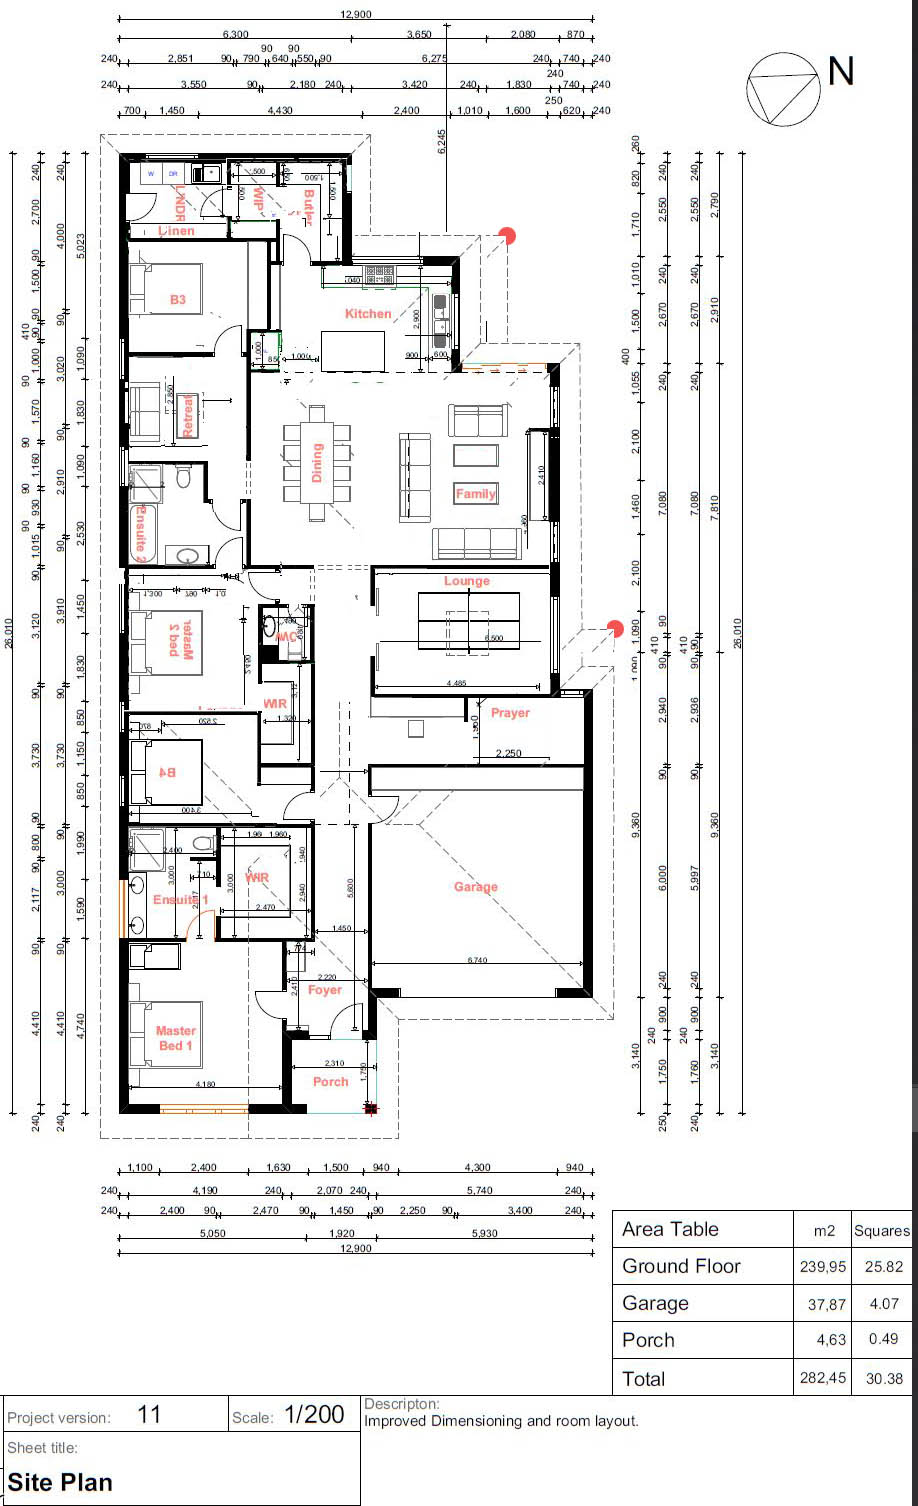 Seeking feedback ideas for 30sq Custom Floorplan - SE Melbou